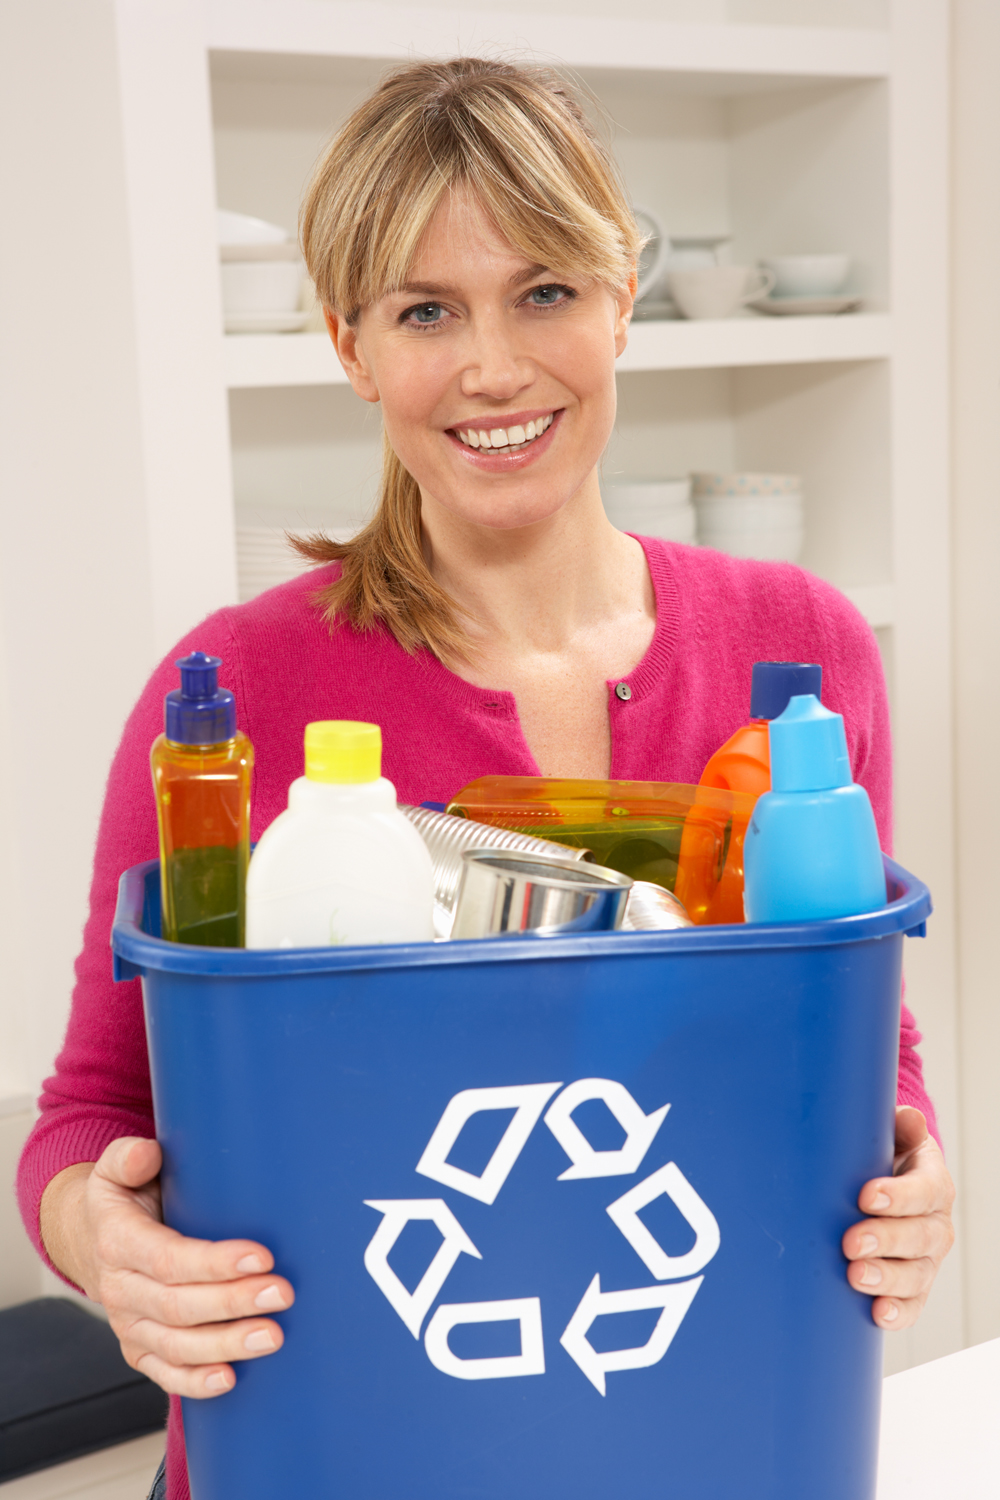 Recycling is an easy thing anyone can do to help conserve natural resources. Residents can recycle common household product packaging like plastic bottles and jugs, and bi-metal cans.